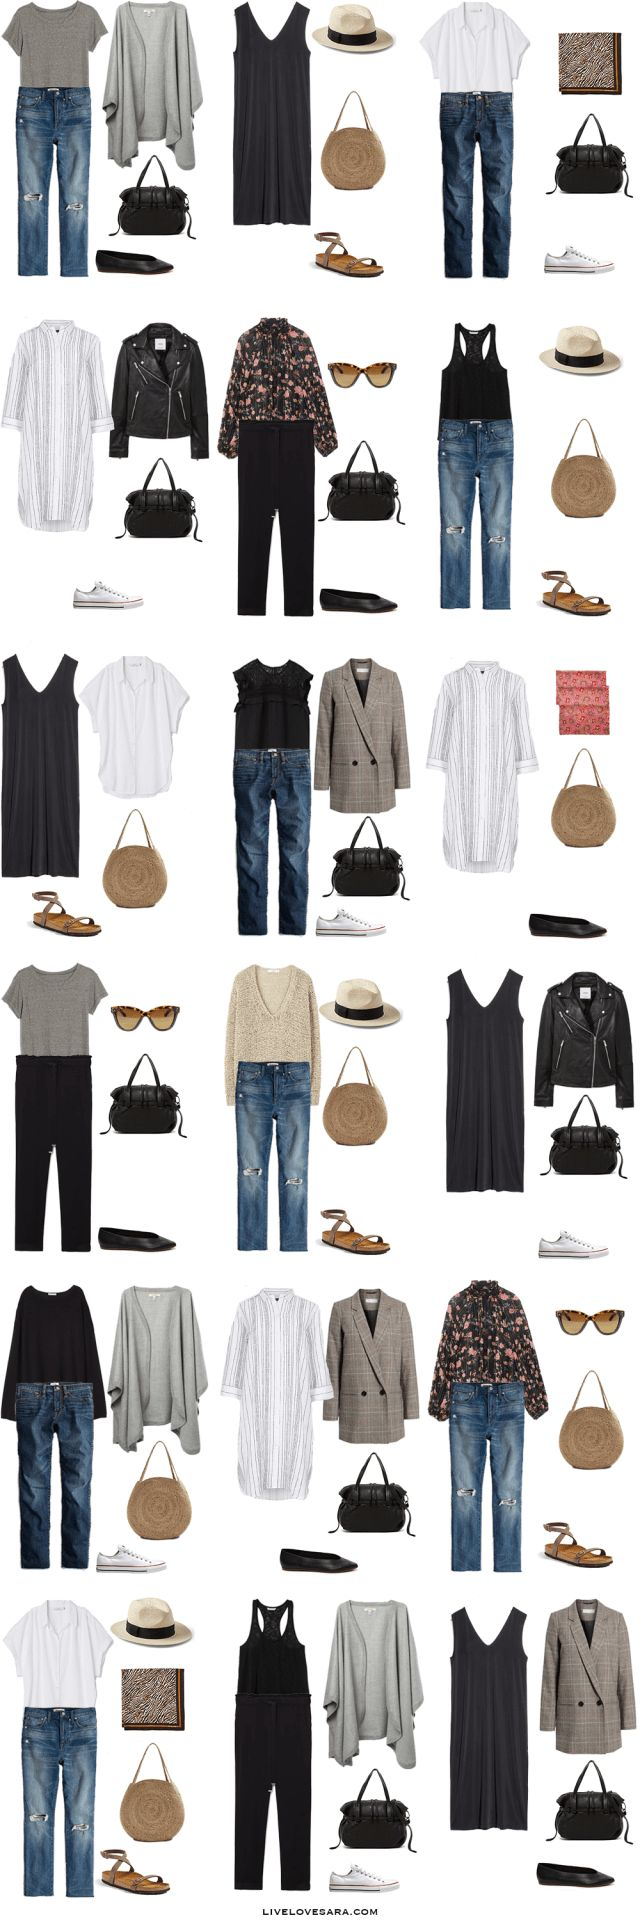 51 best 2018 Travel Capsule Wardrobes and Outfits images ...